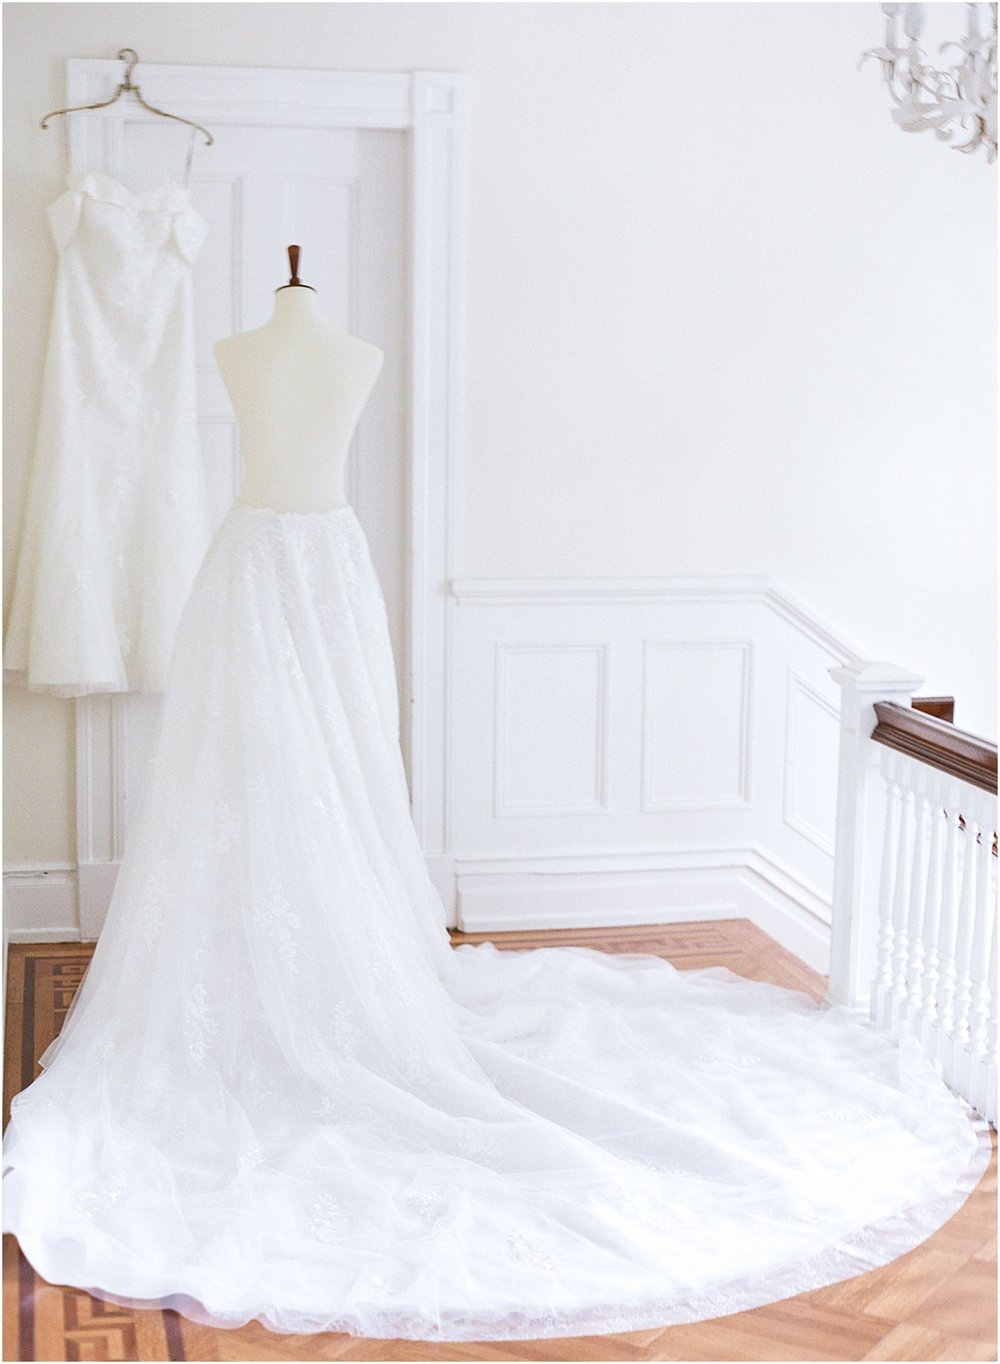 our_wedding_day_troy_NY_emma_willard_fairy_tale_royal_neutral_beauty_and_the_beast_moped_private_estate_cape_cod_boston_wedding_photographer_meredith_jane_photography_chris_kerr_photo_1942.jpg